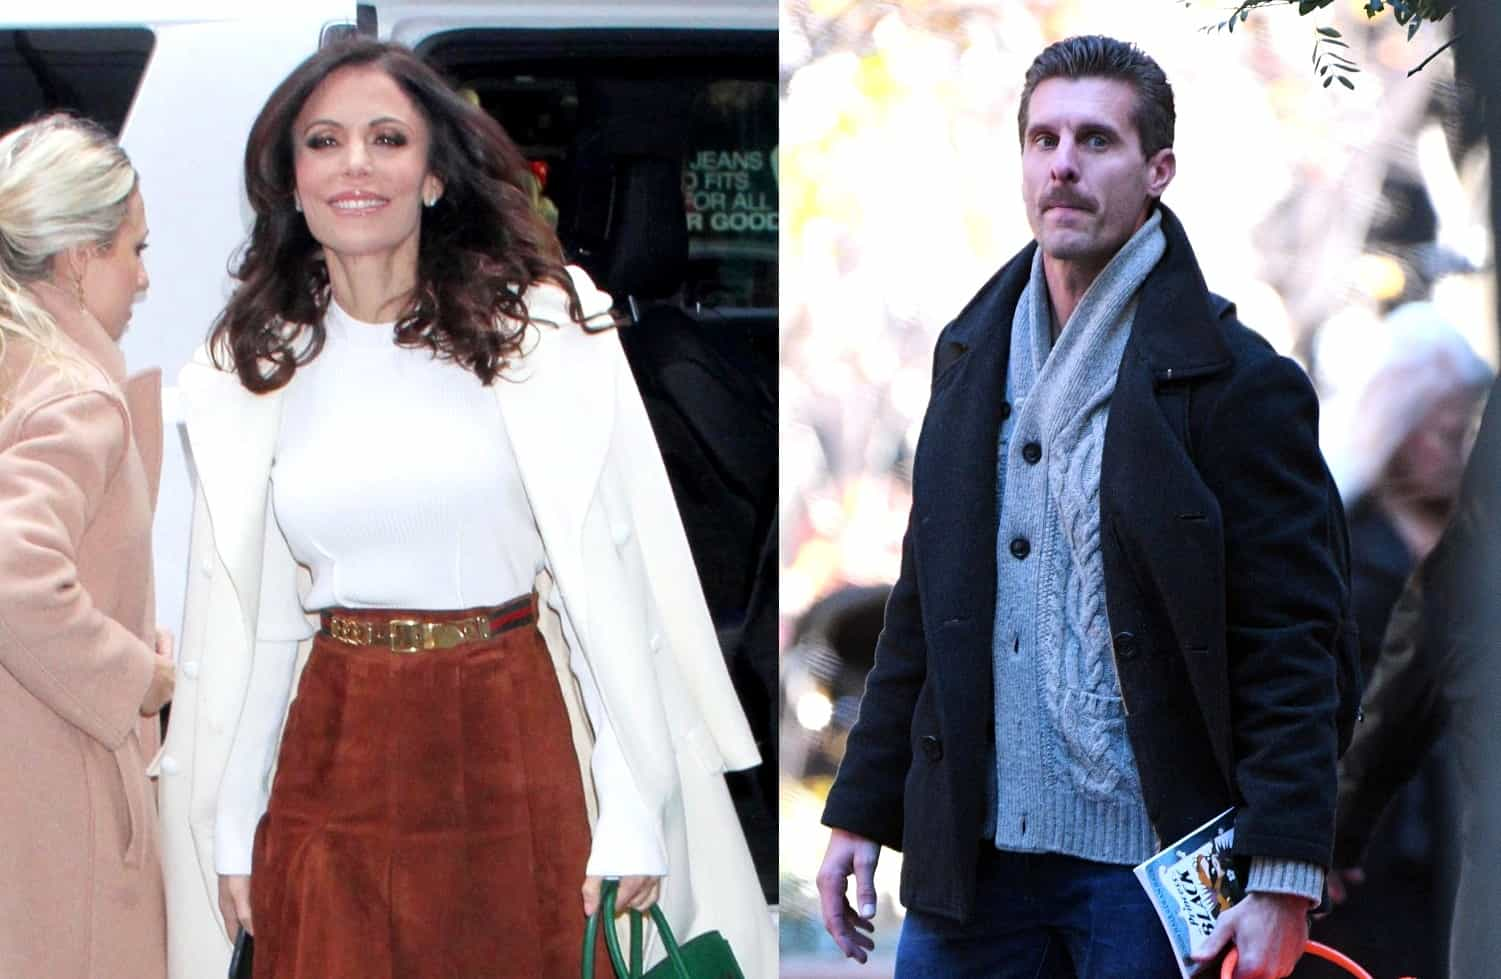 RHONY's Bethenny Frankel Admits to Secretly Recording Ex Jason's Phone Calls to Daughter, Cries In Court Over 'Torture'